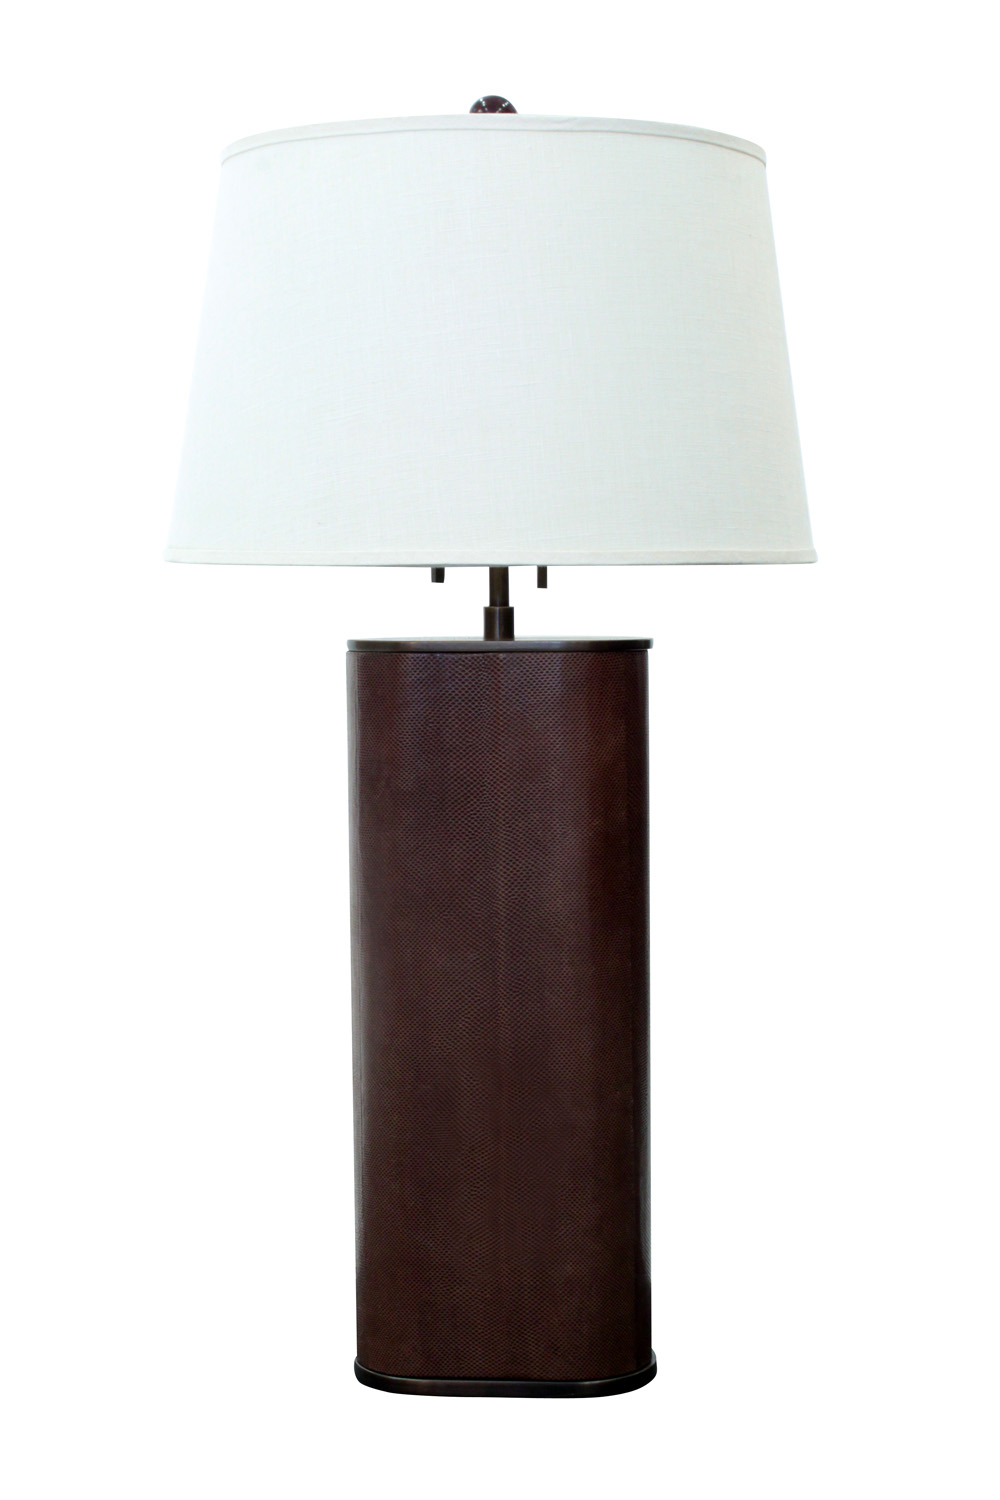 Springer 55 brown whipsnake bronz tablelamp144 hires.jpg